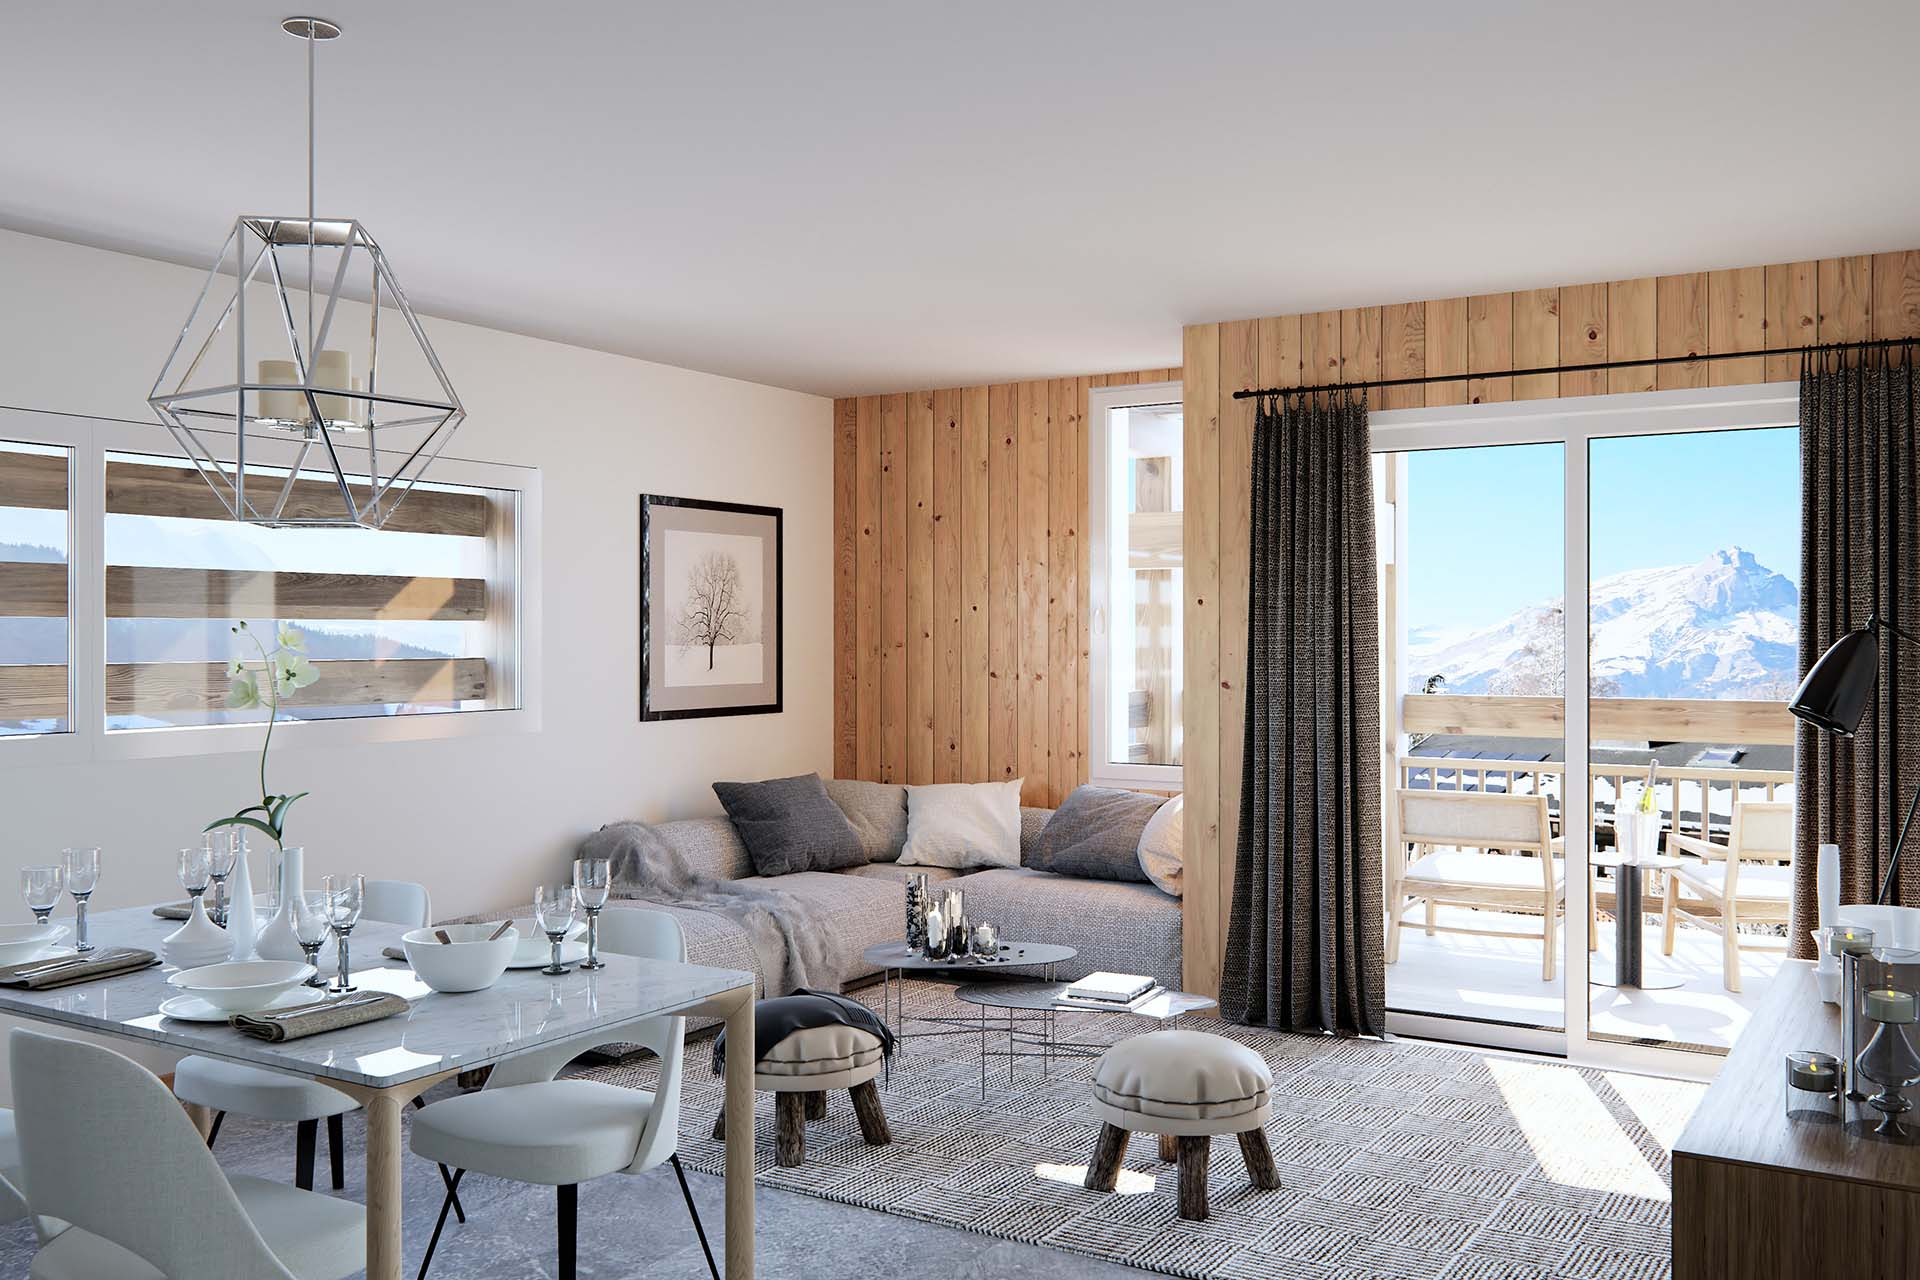 3D Architects Studio, creation of a 3D perspective of the living room of a luxurious apartment.